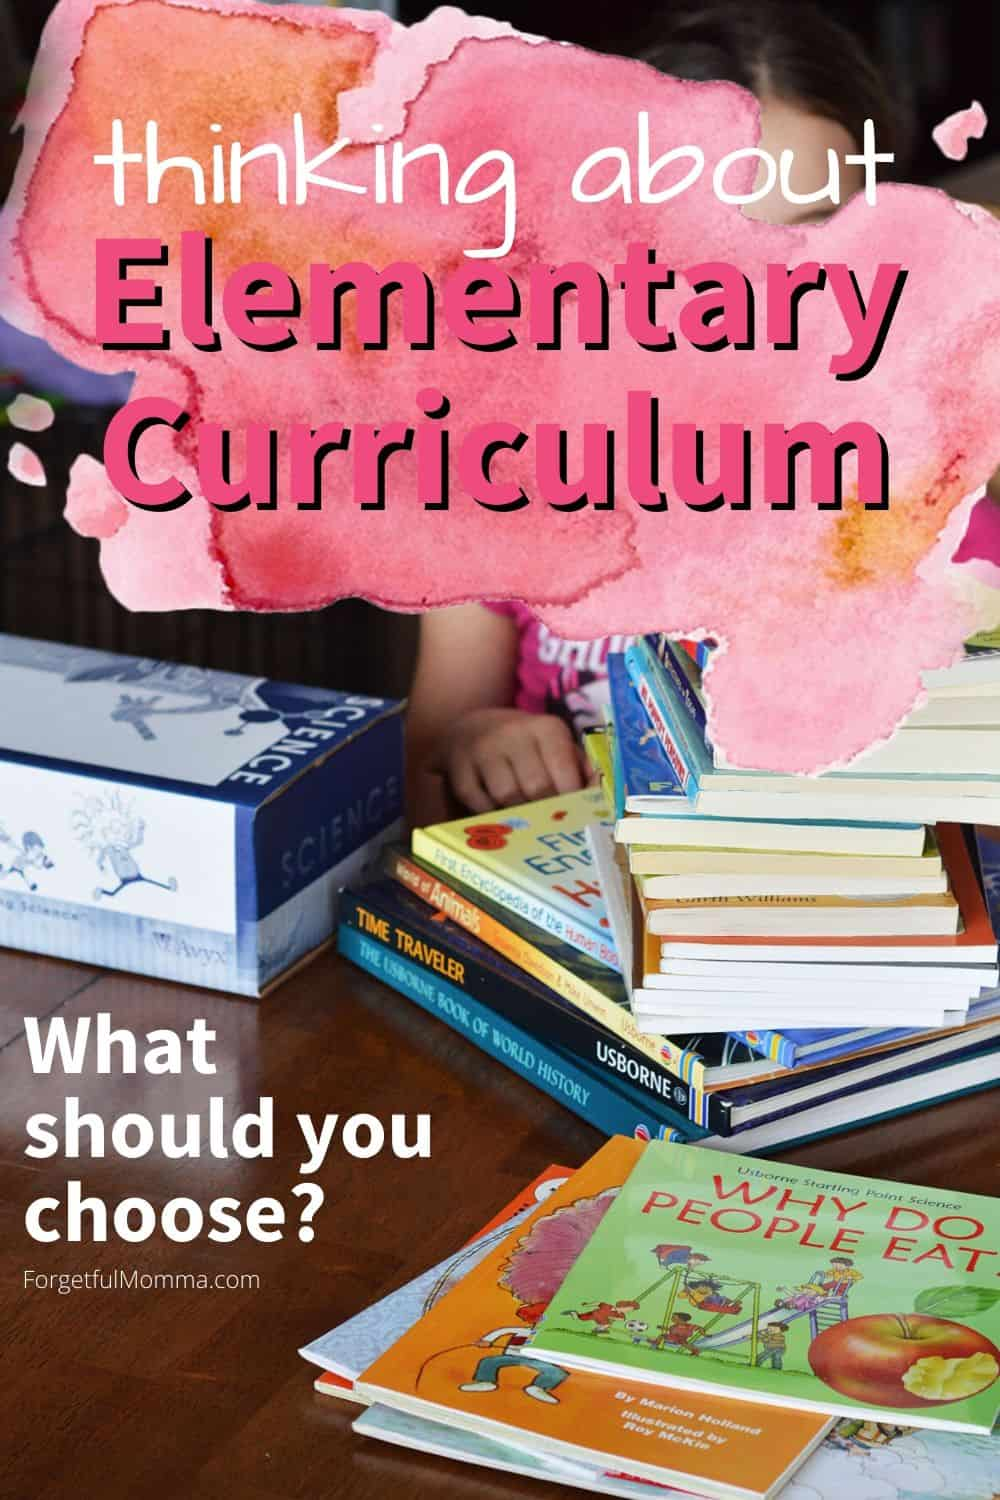 Thinking about Elementary Curriculum Choices for Your Family